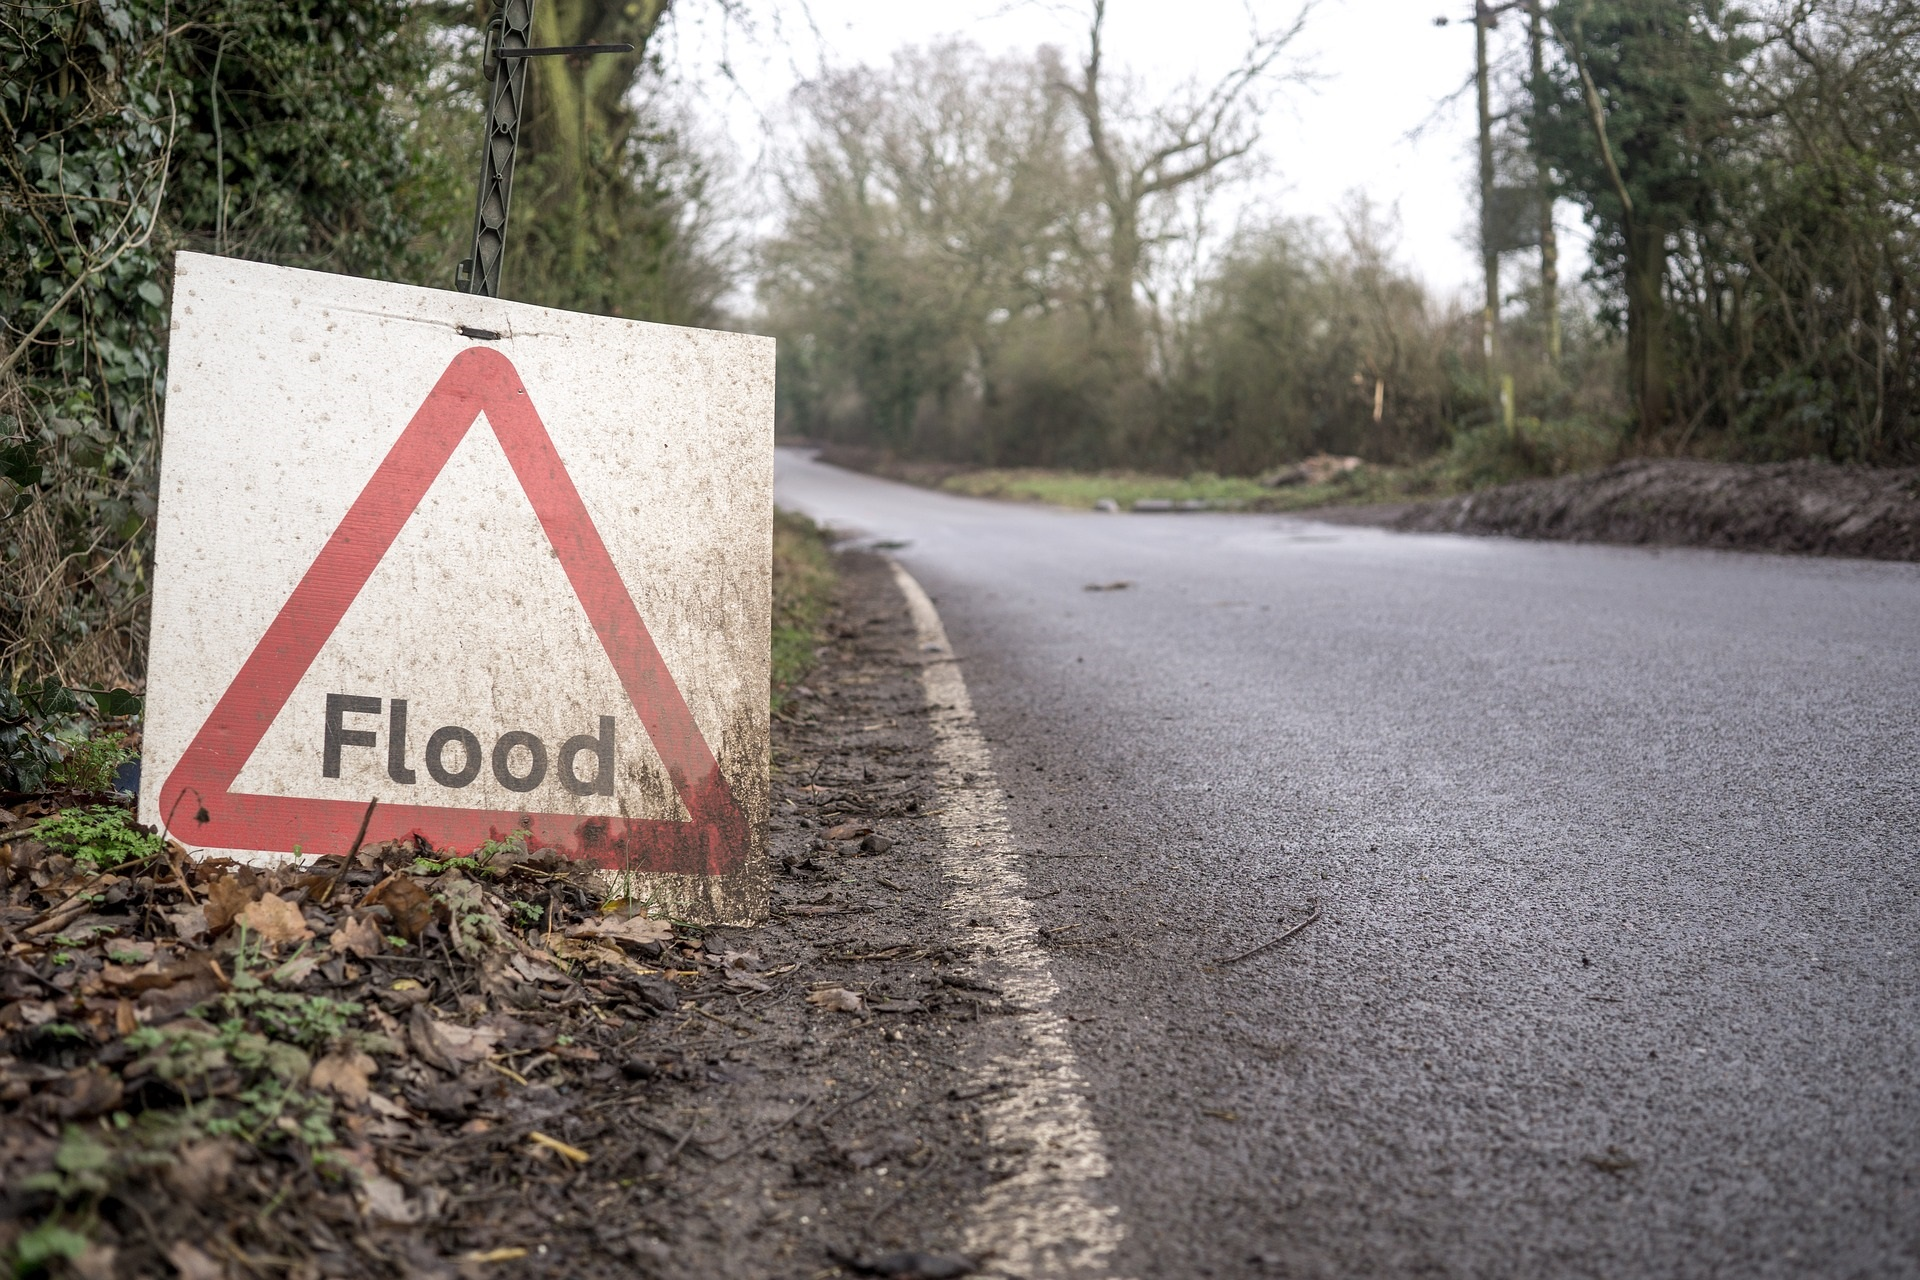 Flood sign - Image by Ben Newton from Pixabay